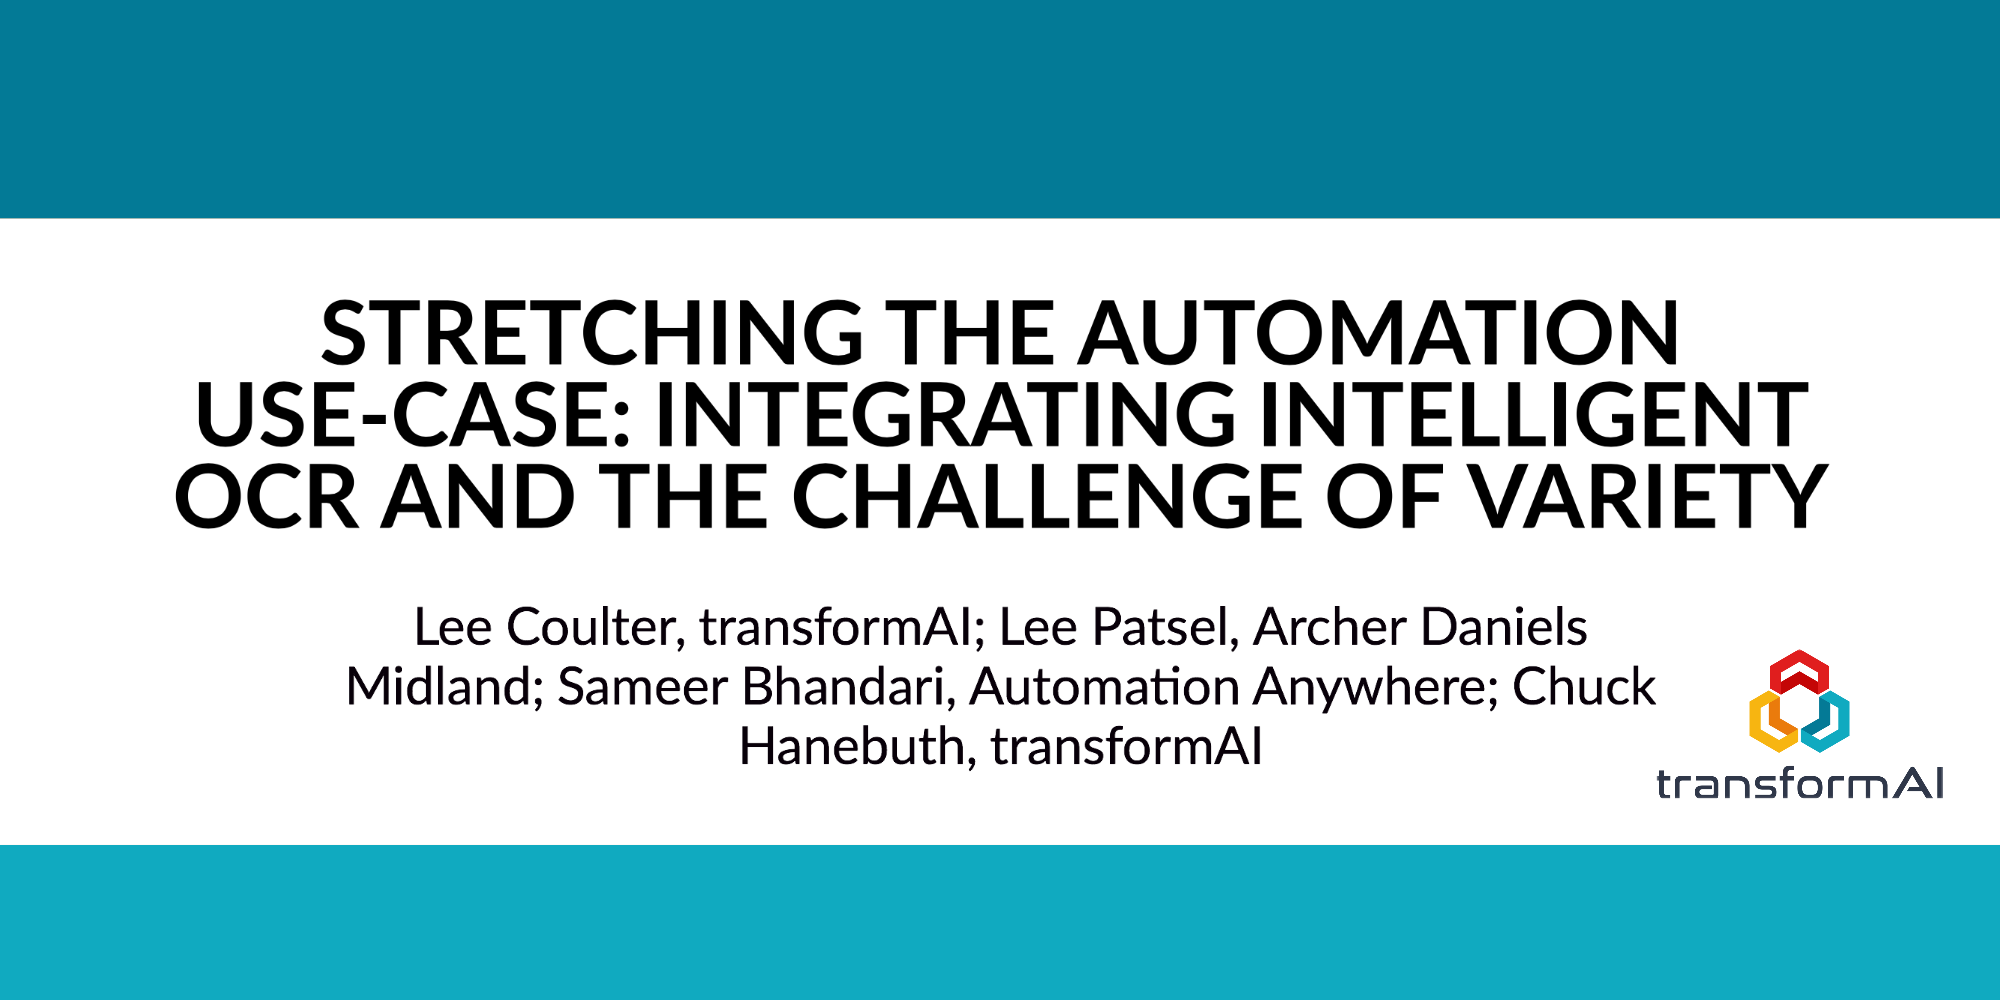 WHITE PAPER - STRETCHING THE AUTOMATION USE-CASE: INTEGRATING INTELLIGENT OCR AND THE CHALLENGE OF VARIETY